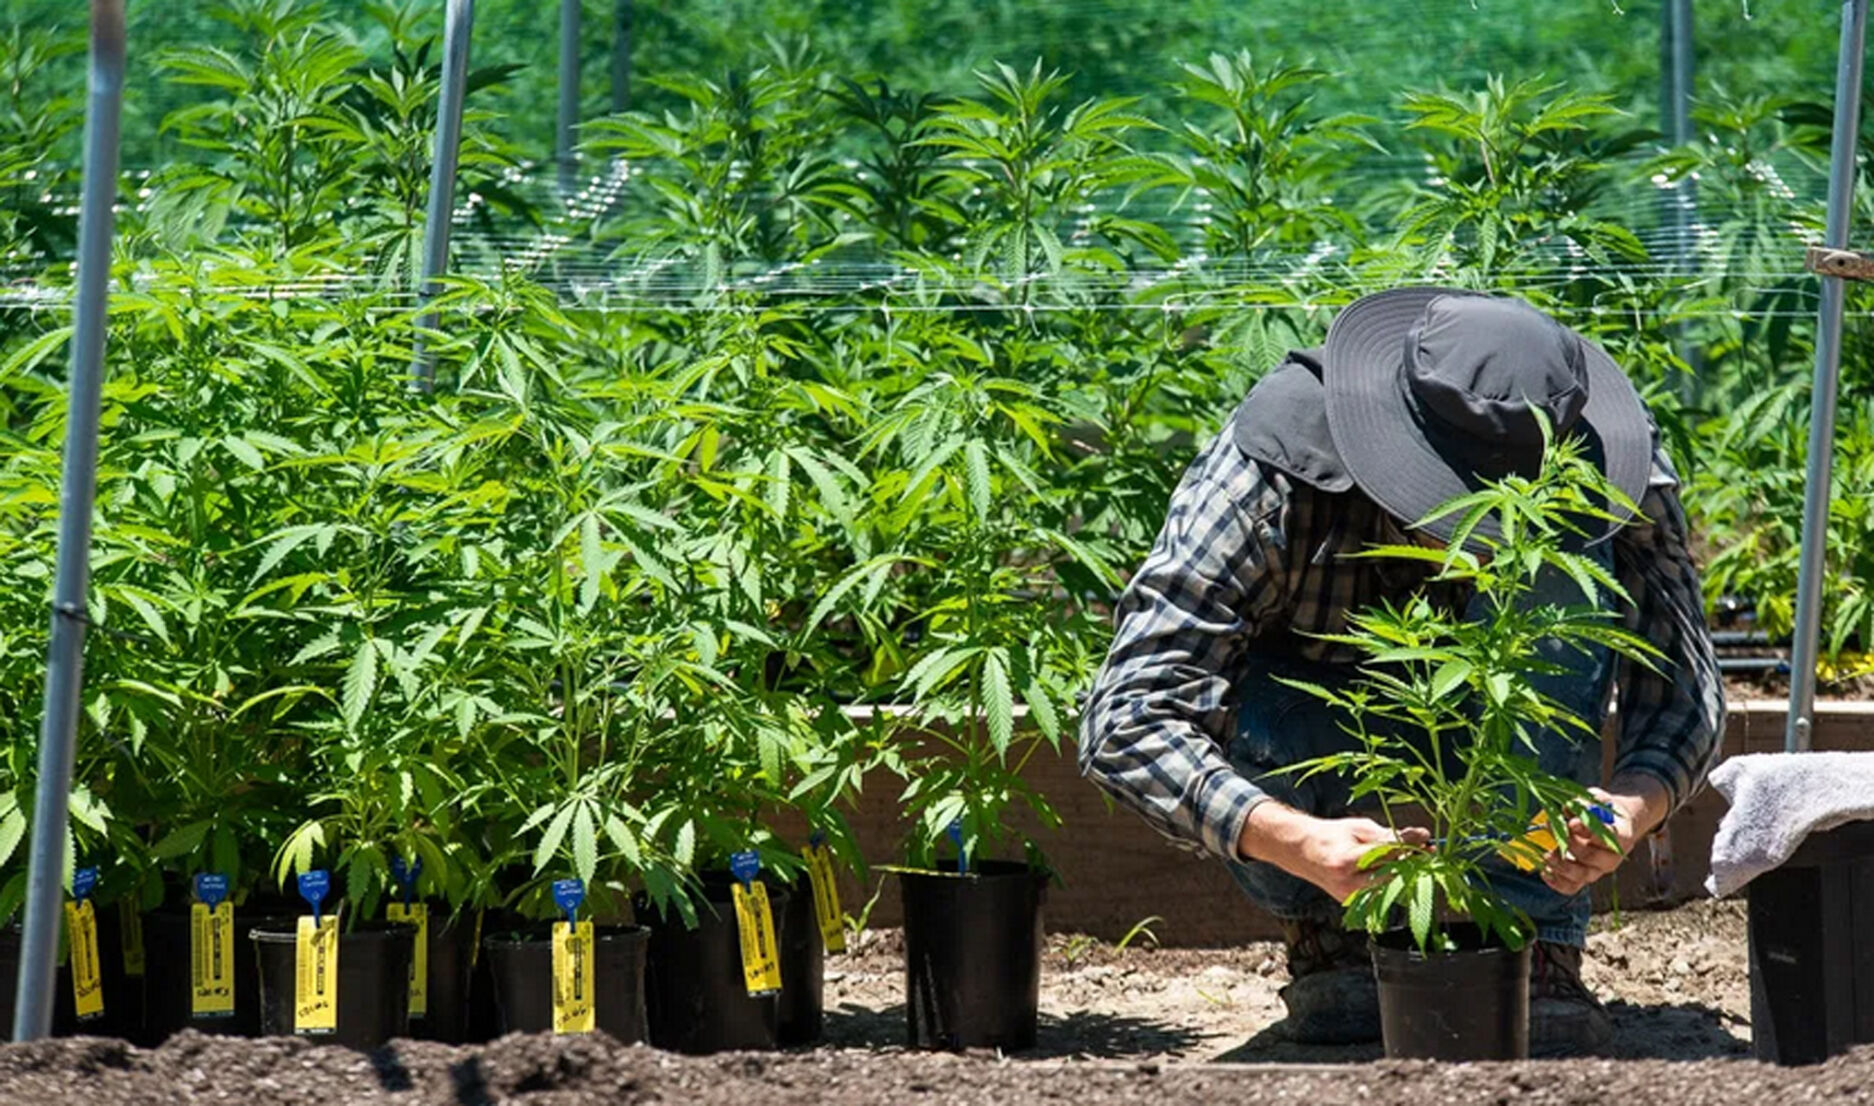 Seed-to-sale tracking for medical marijuana in question